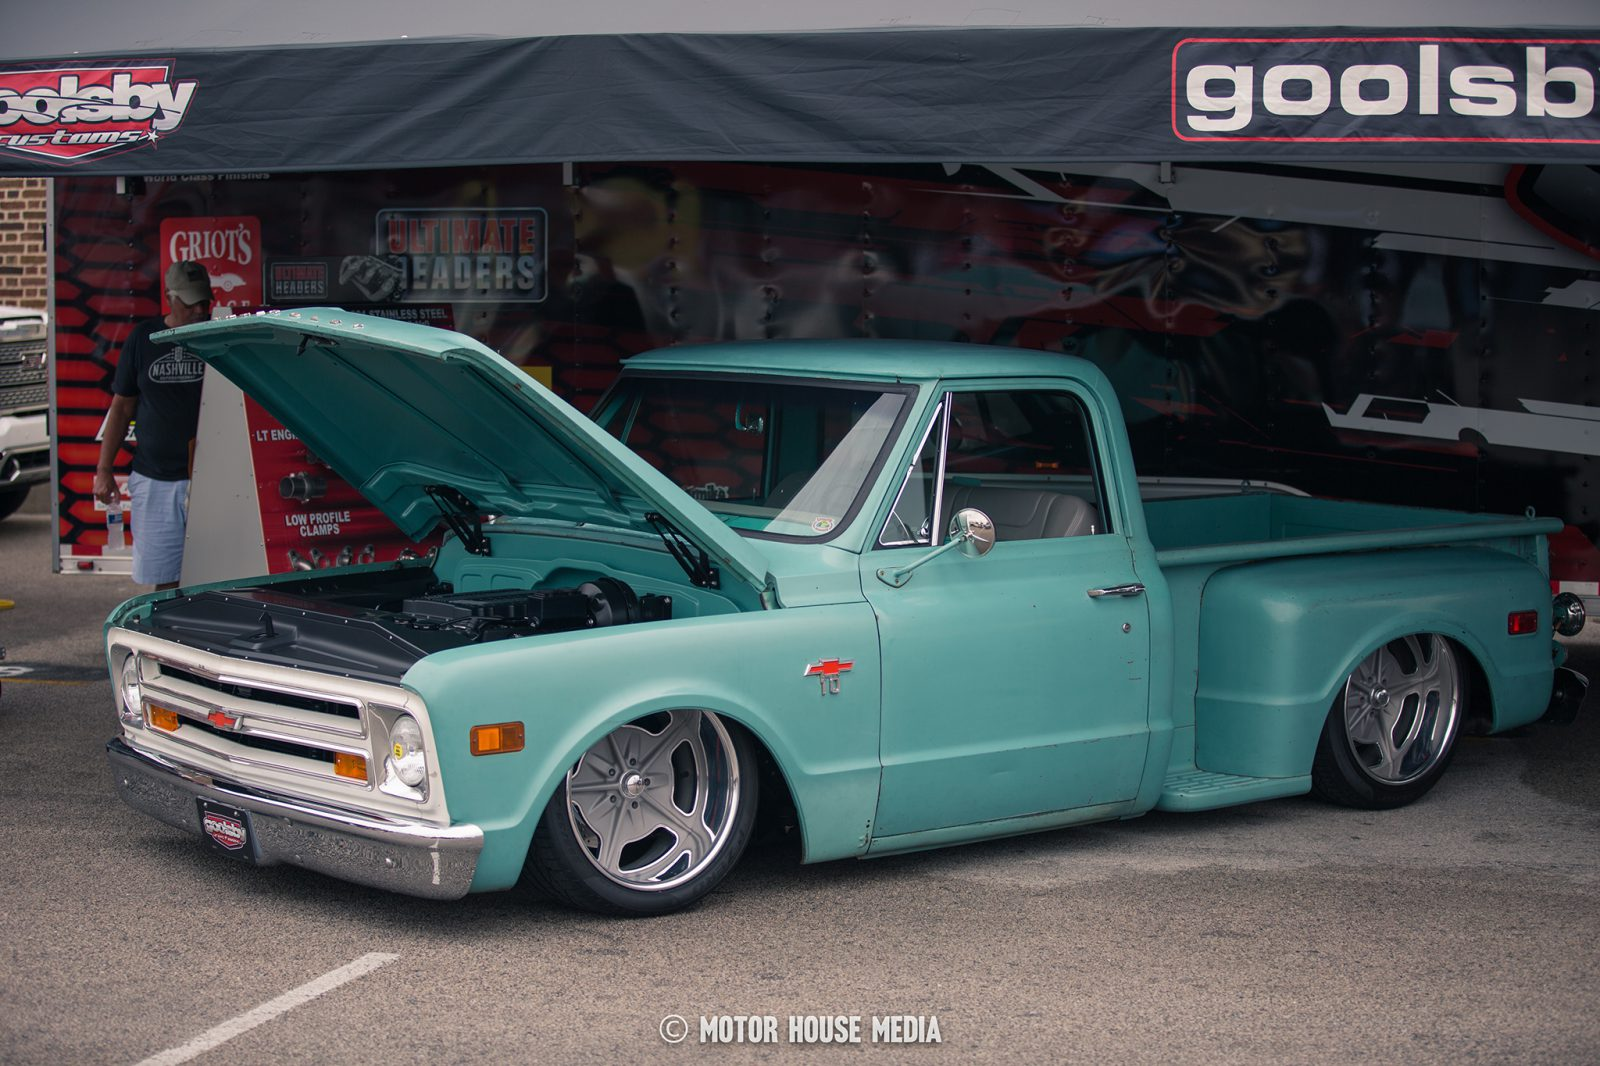 Hot rod truck at the Good Guys show